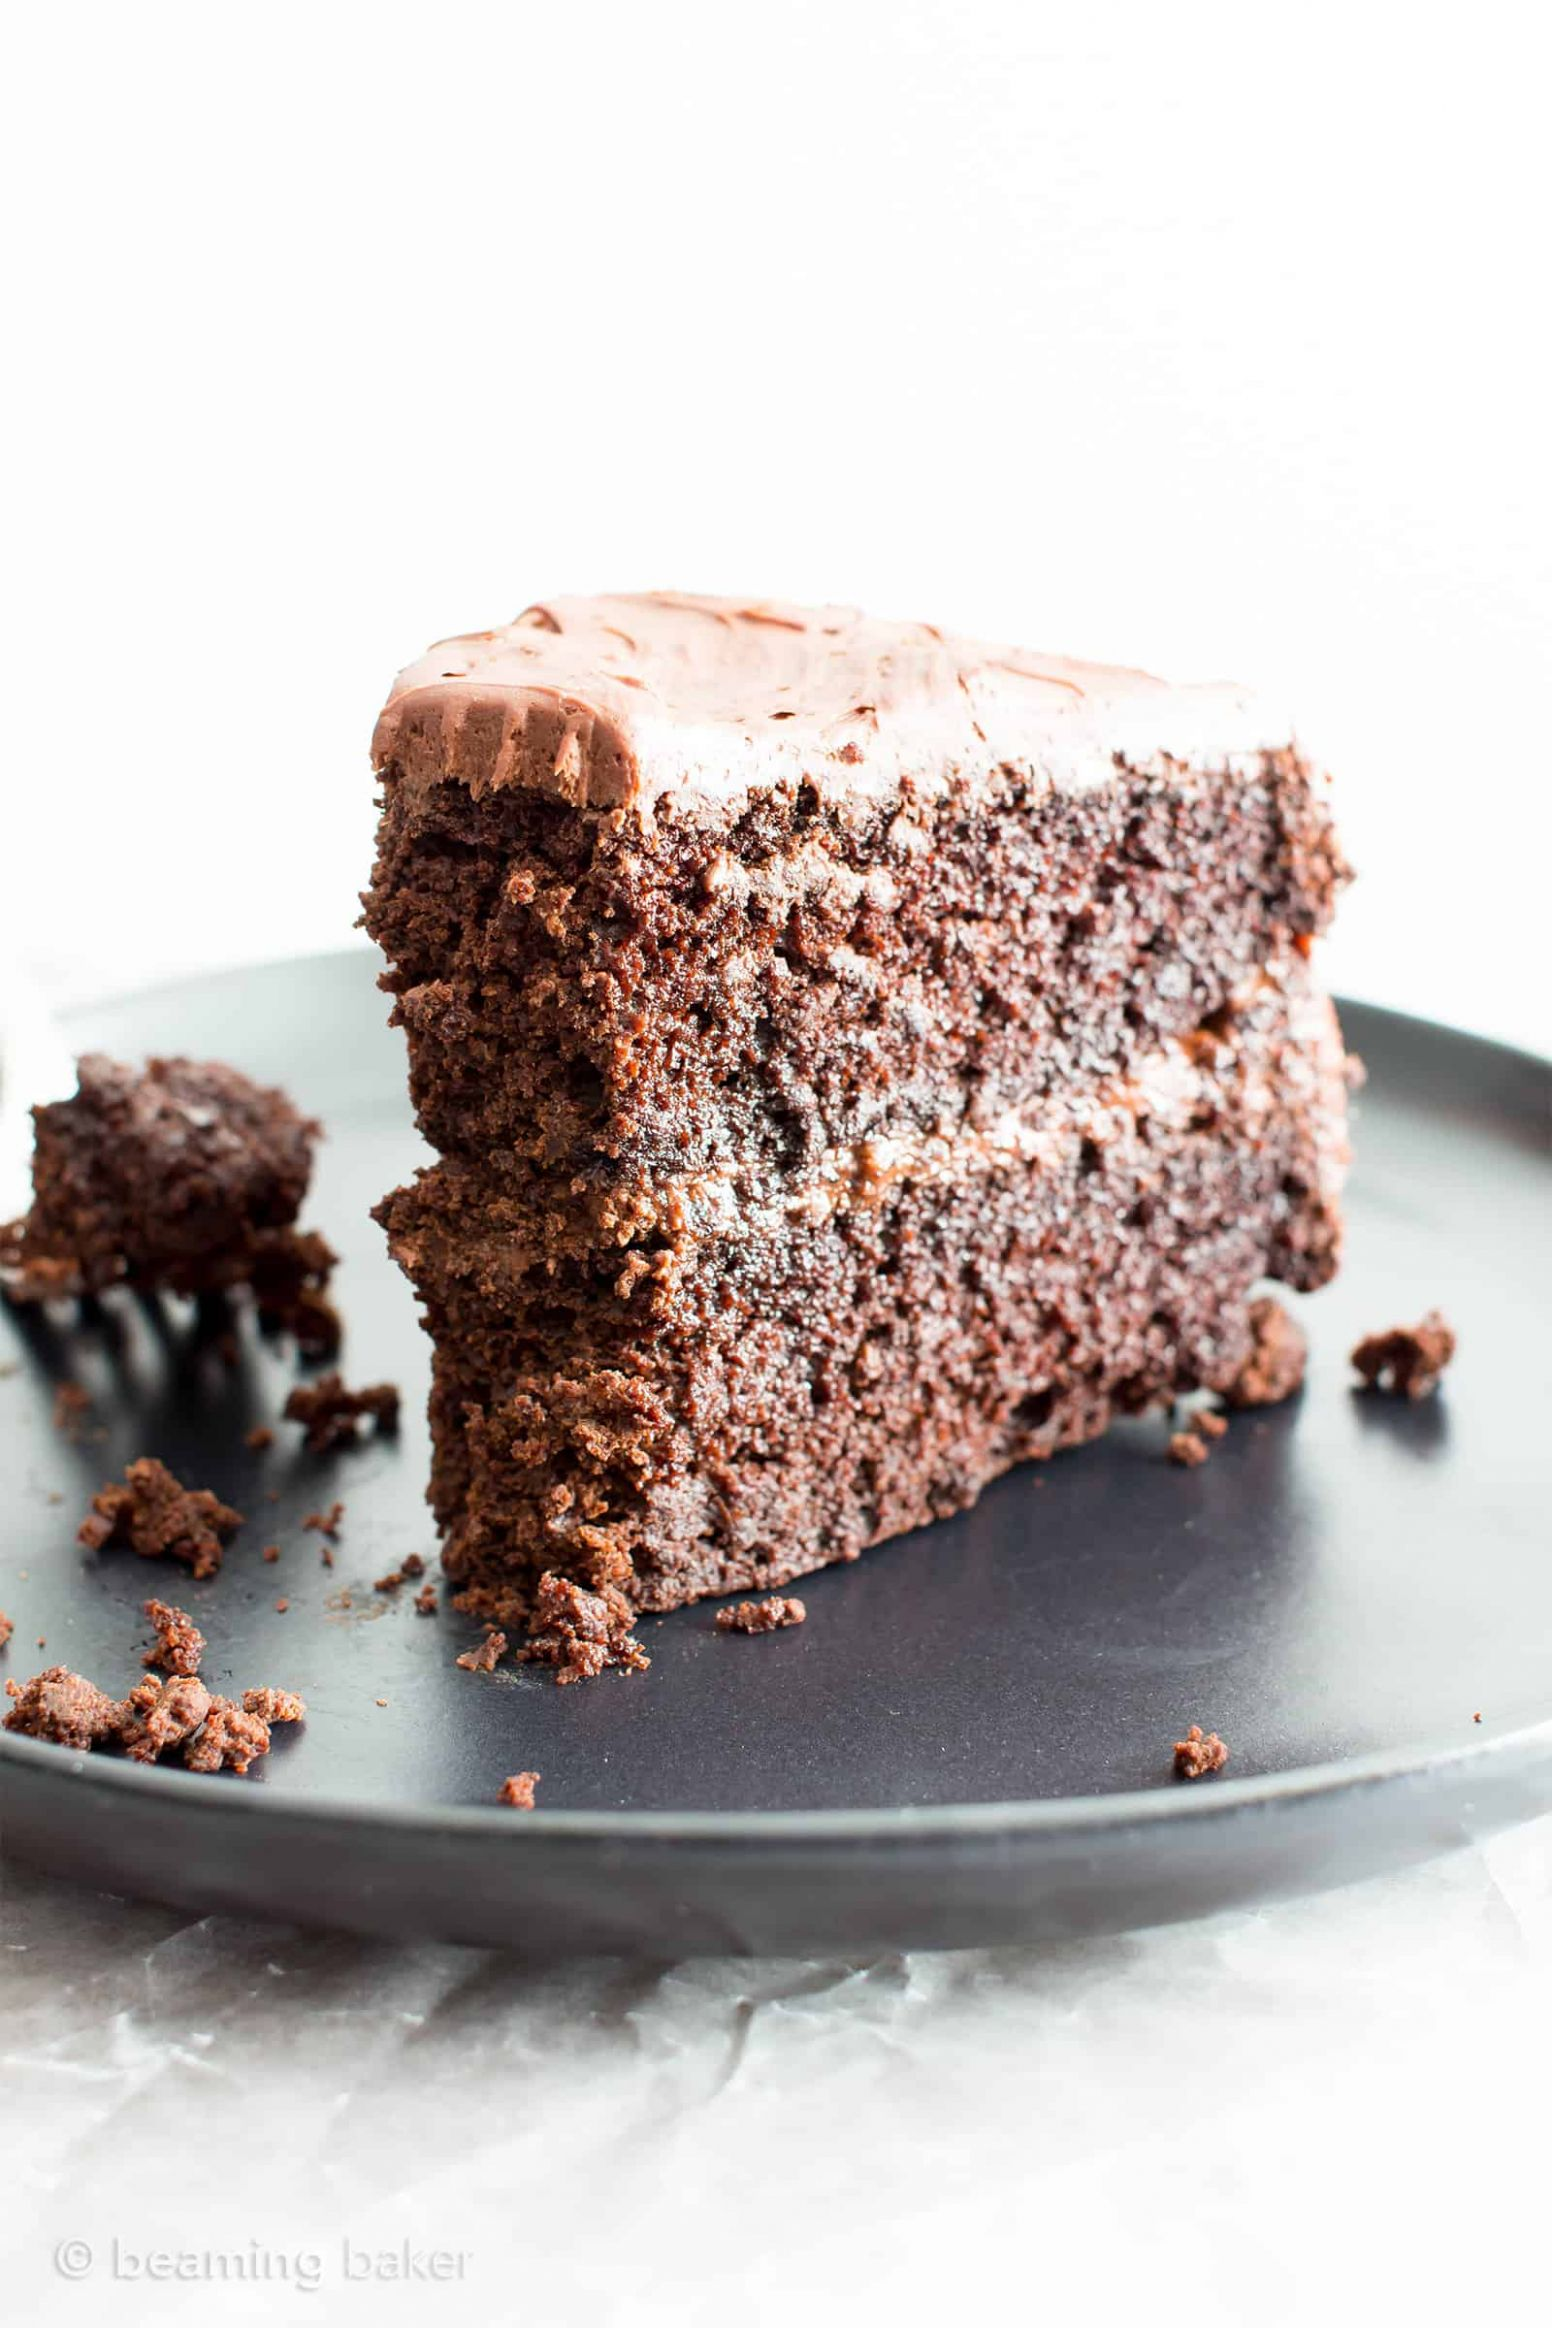 Vegan Gluten Free Chocolate Cake Recipe (Dairy-Free)